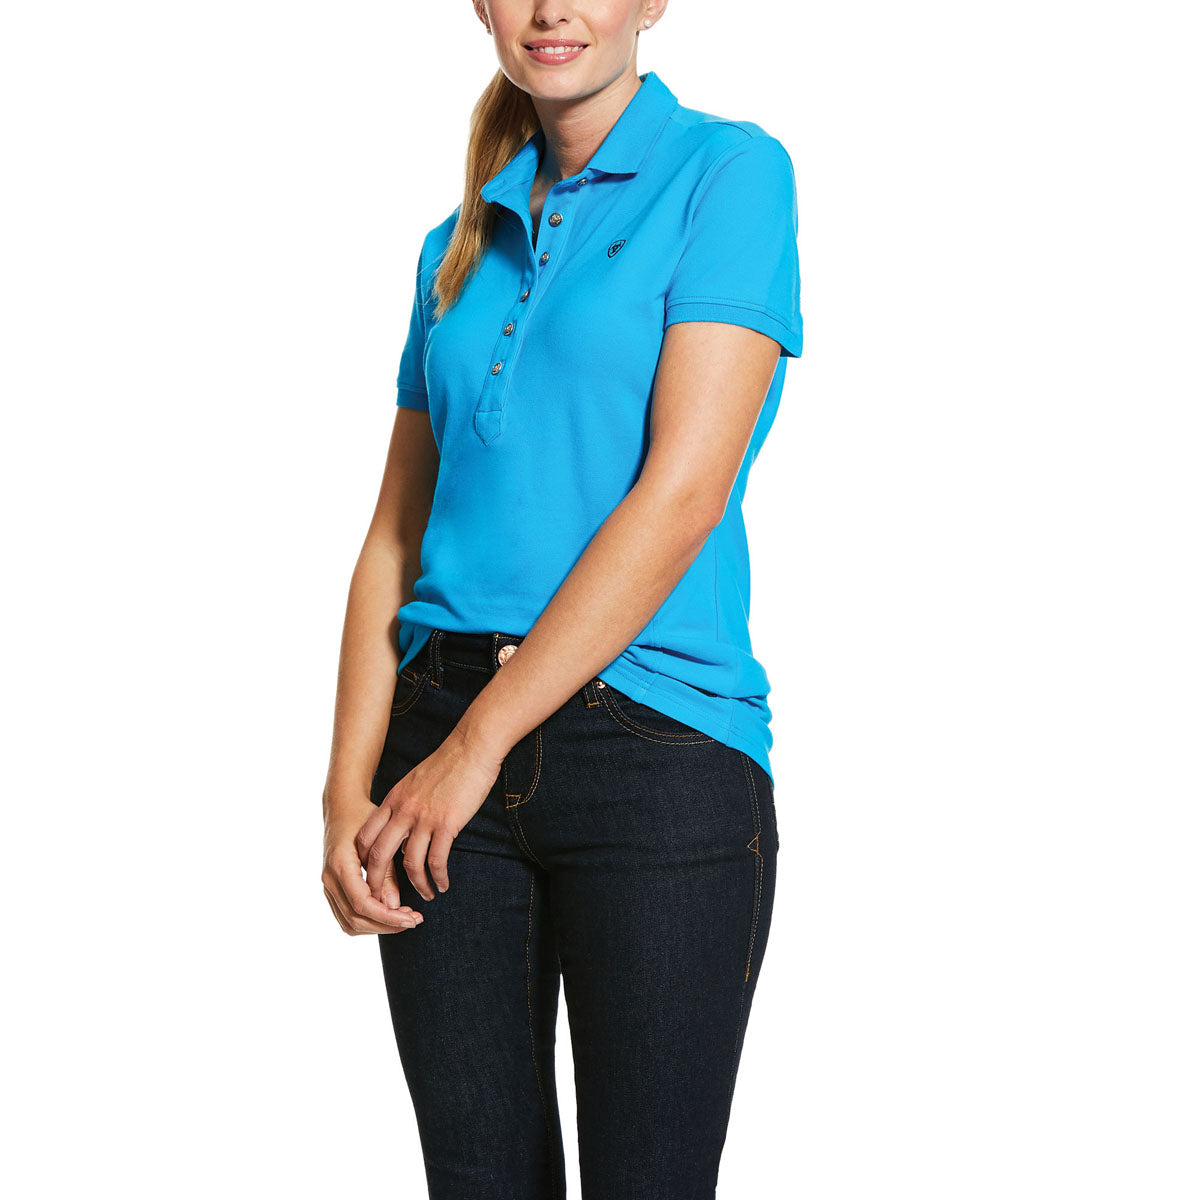 Ariat Women's Prix 2.0 Short Sleeve Polo Shirt